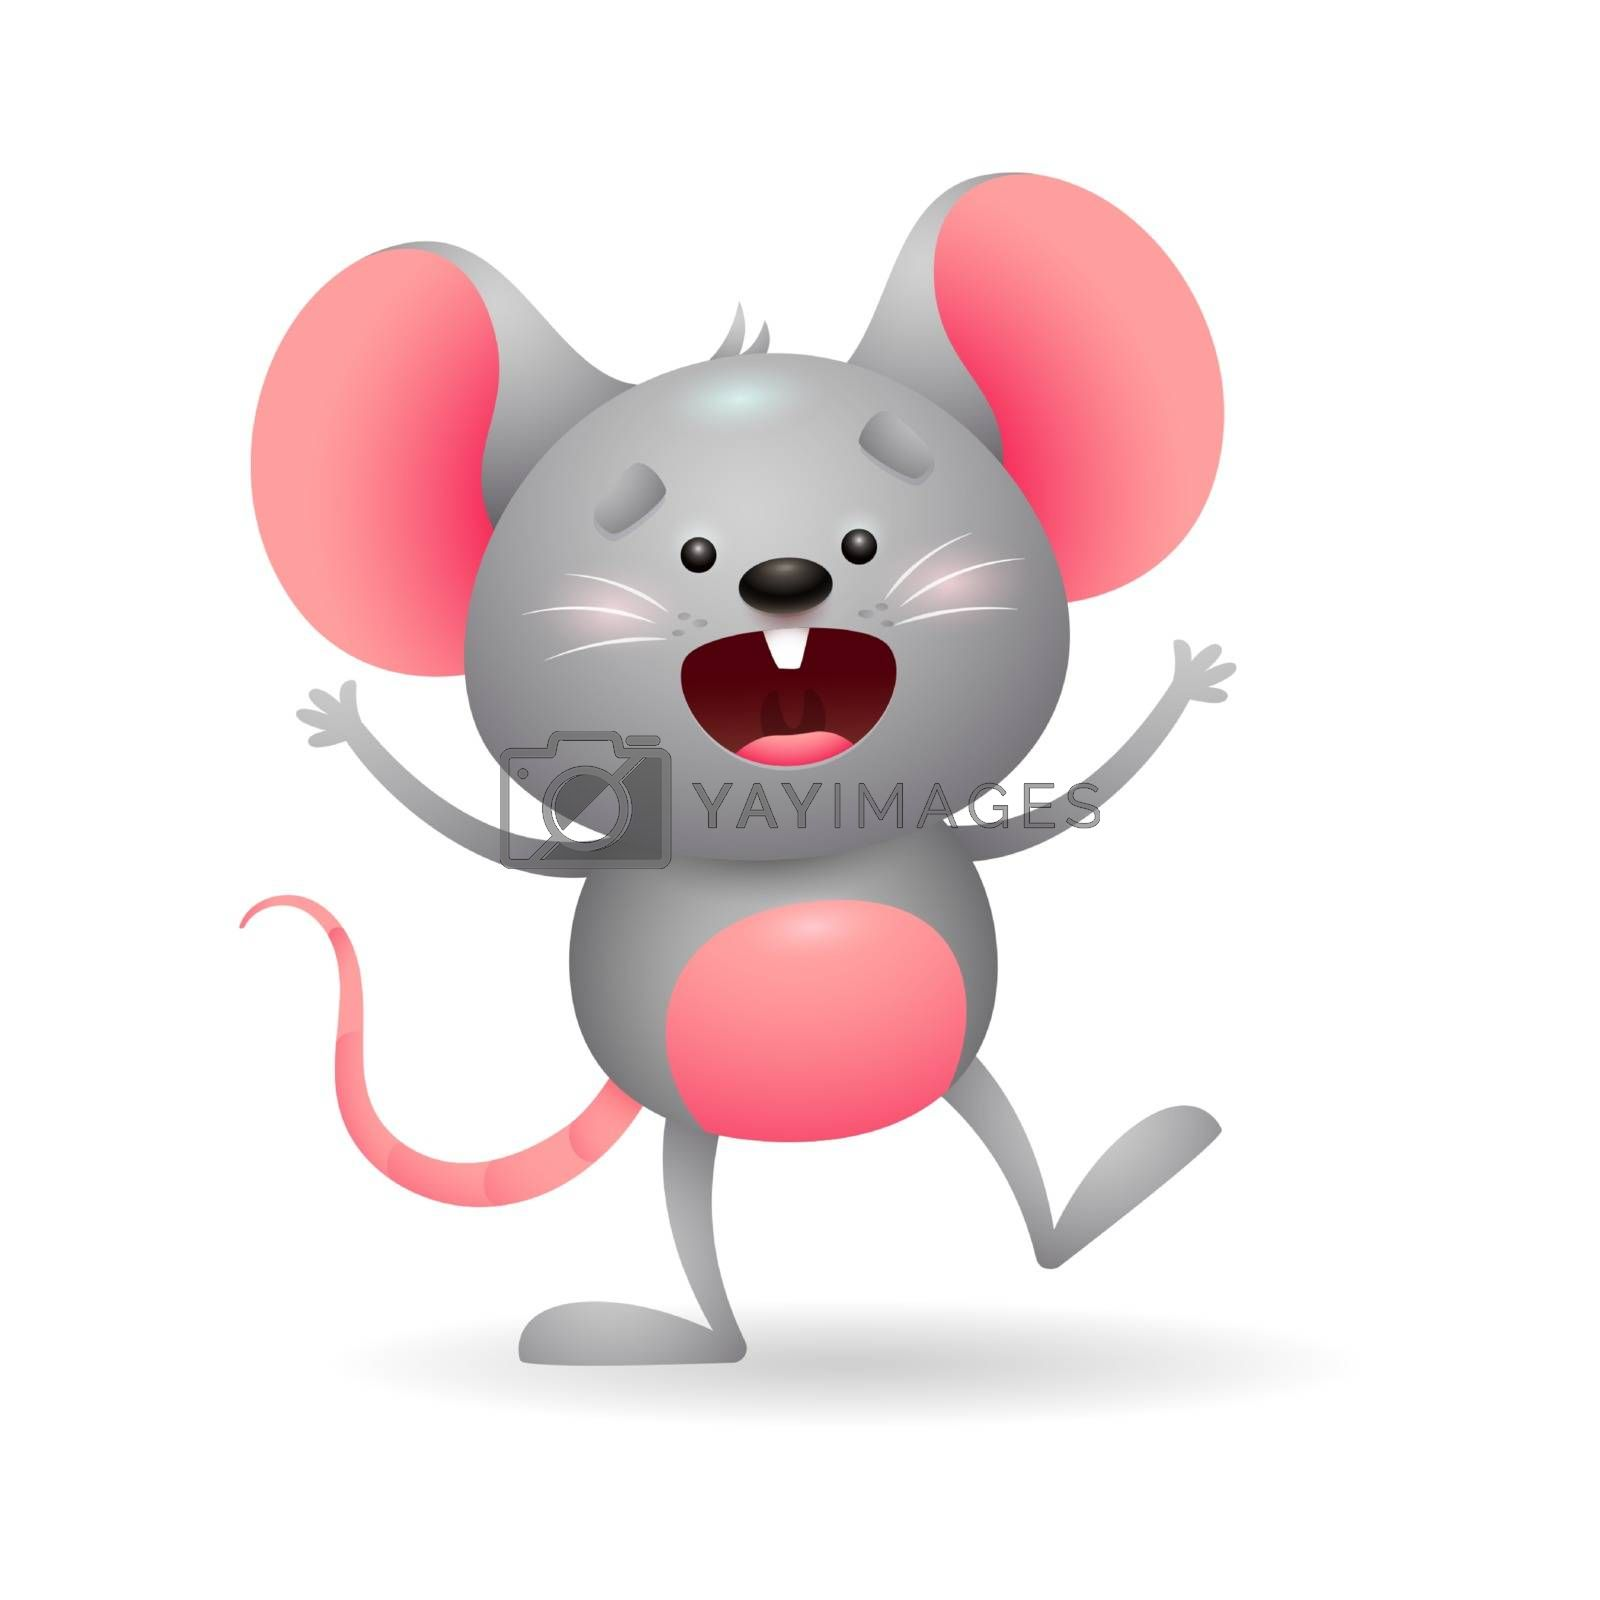 Jolly gray mouse in excitement. Cute character screaming and waving. Can be used for topics like animal, rodent, cartoon